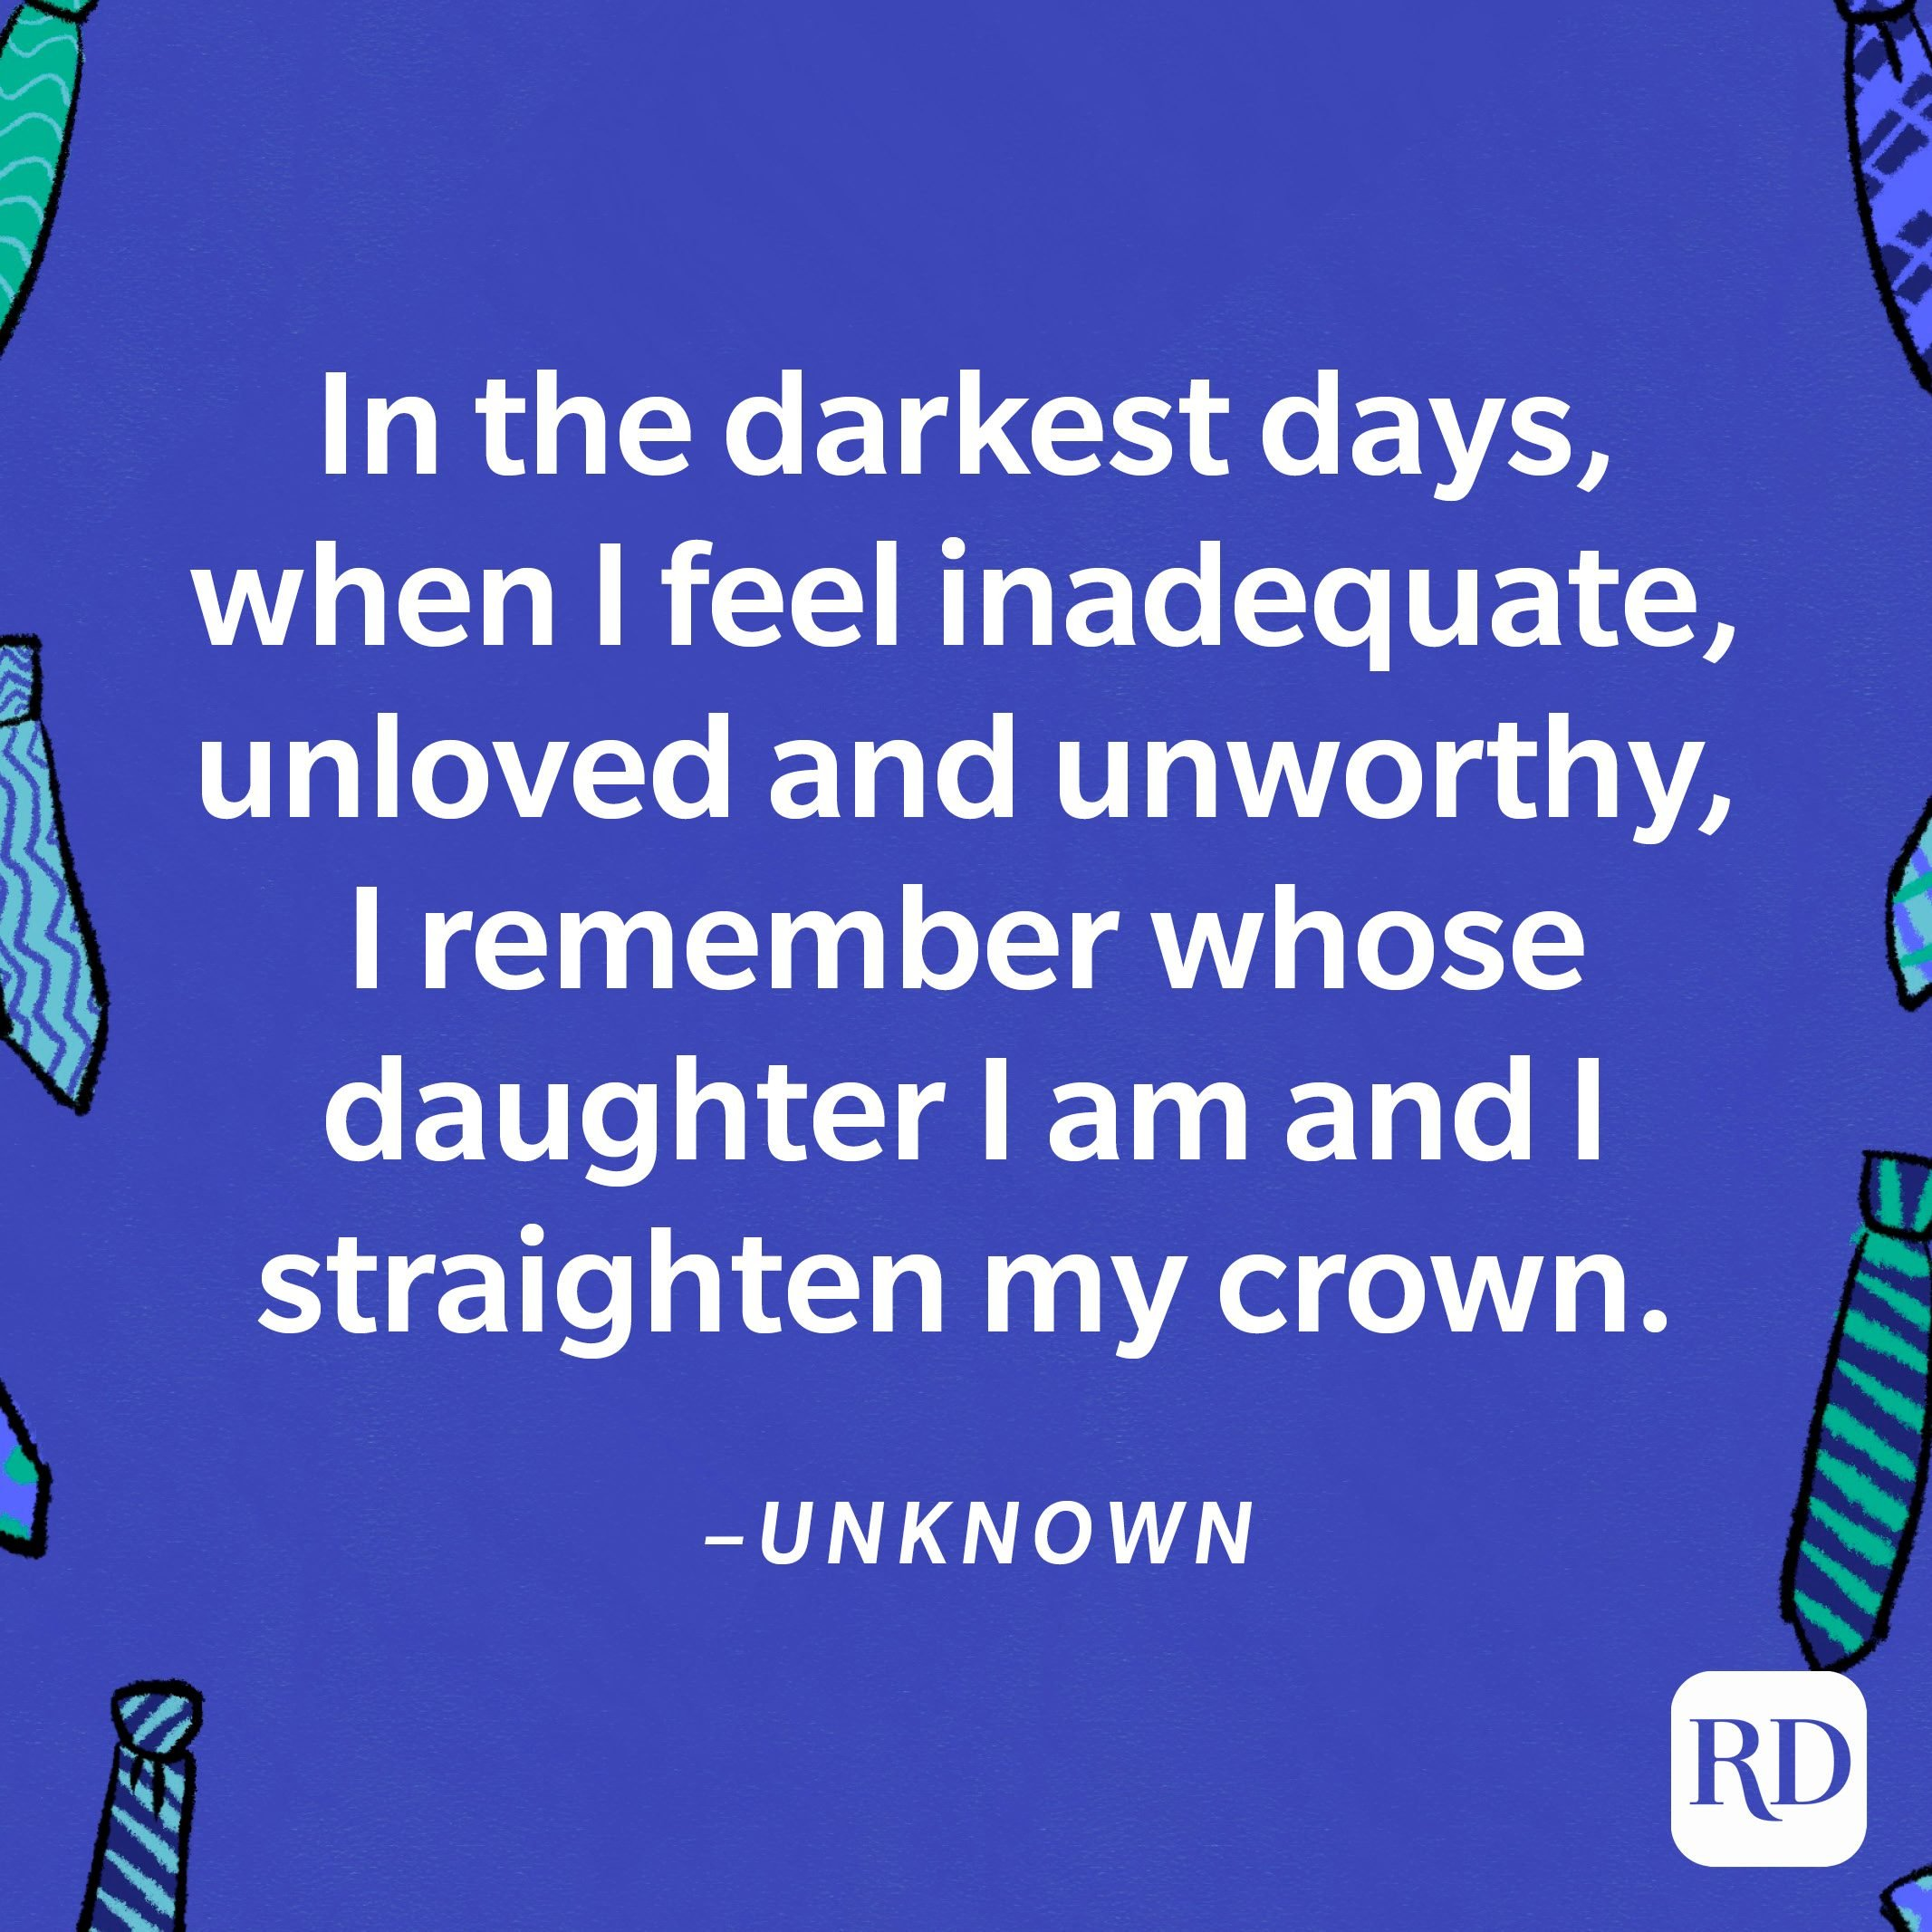 """""""In the darkest days, when I feel inadequate, unloved and unworthy, I remember whose daughter I am and I straighten my crown.""""—Unknown 4"""